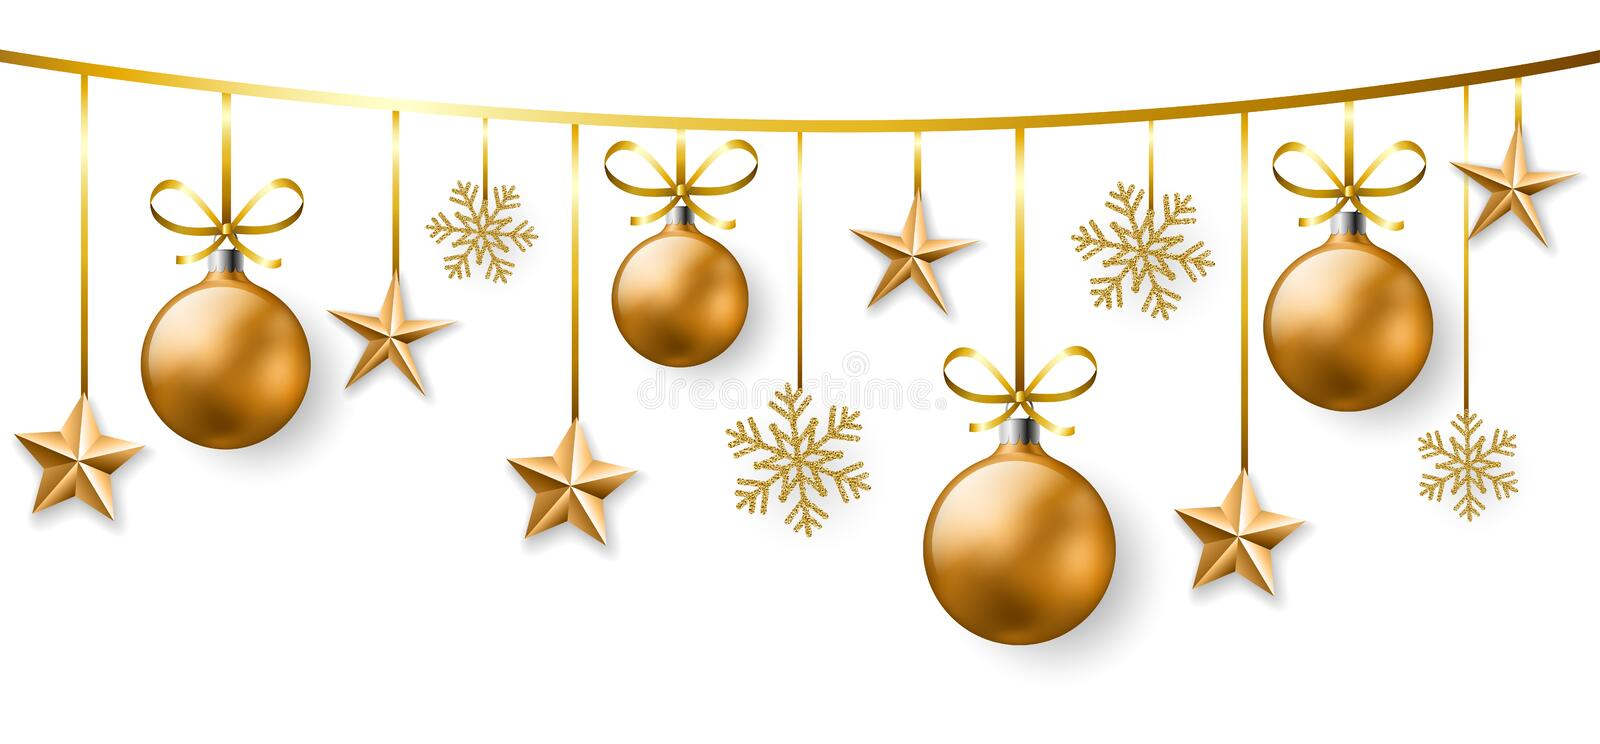 Golden Christmas decoration banner on white background vector illustration